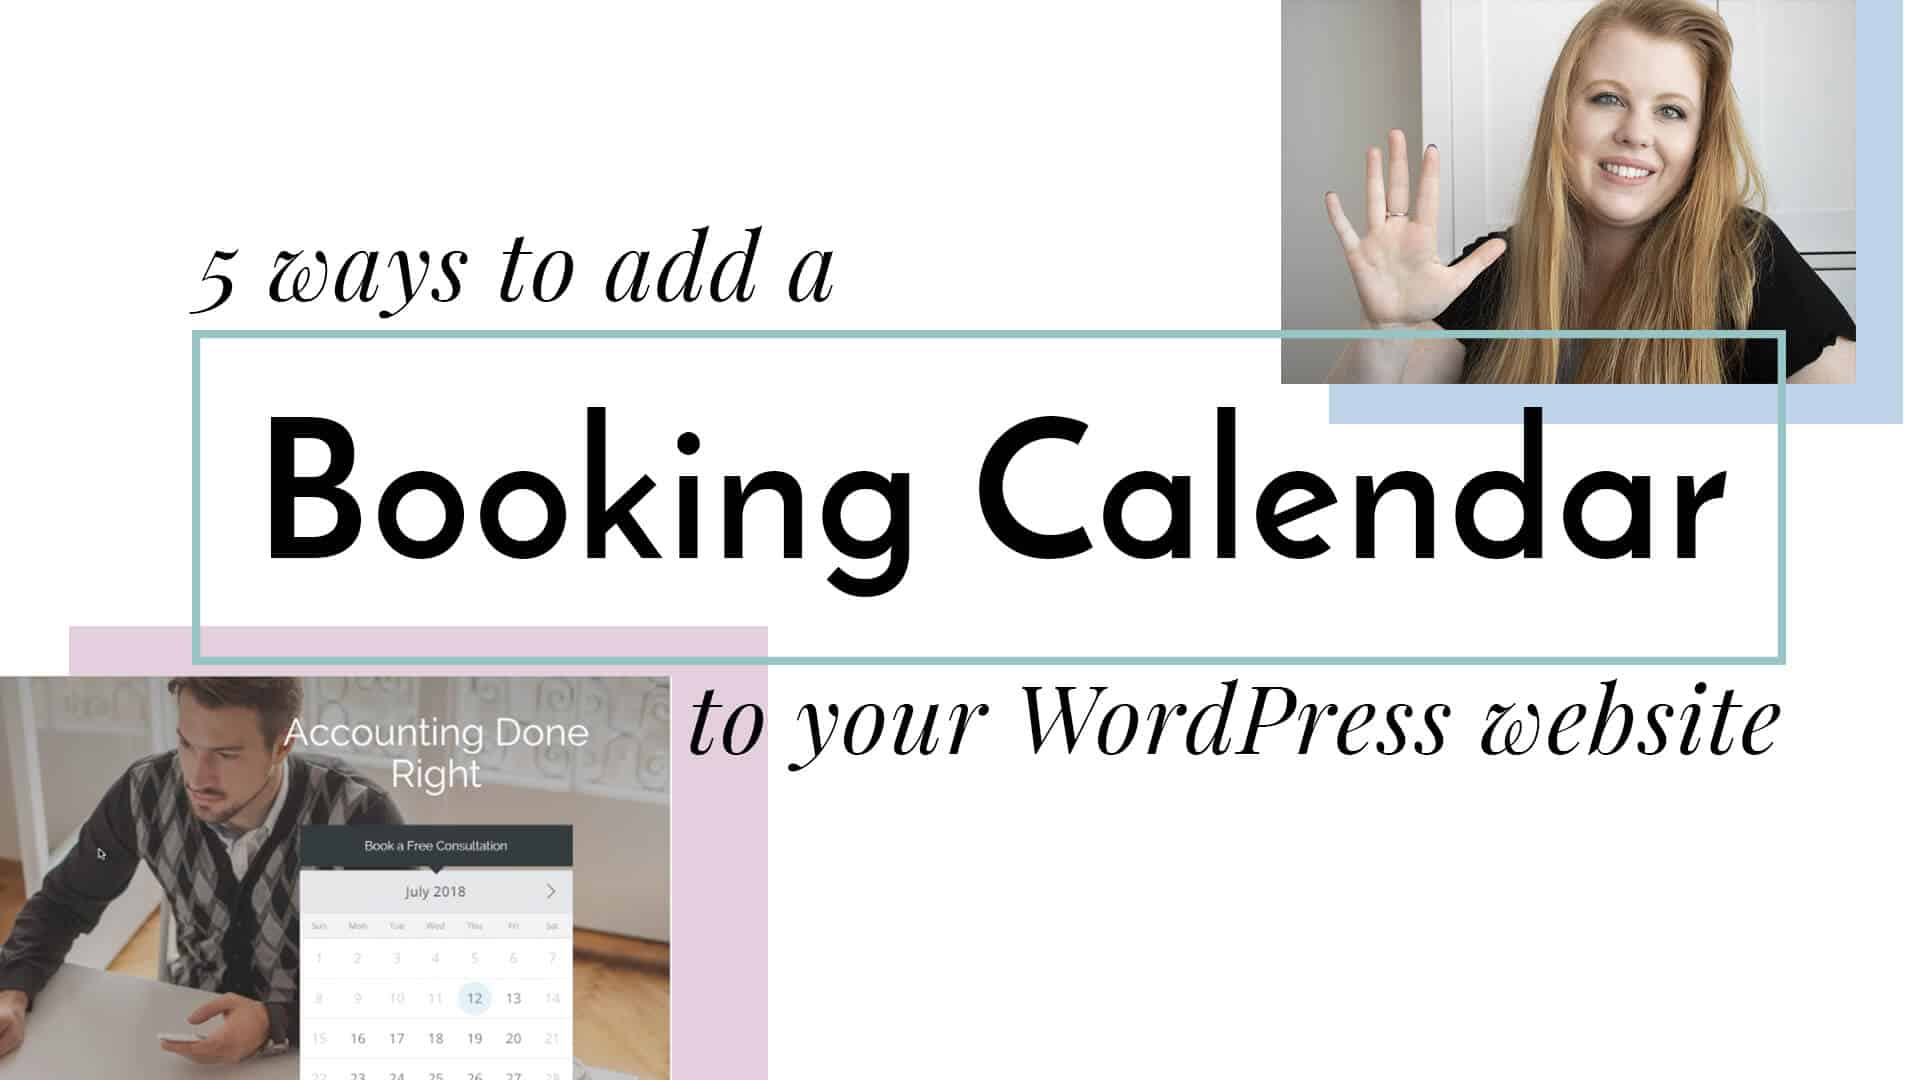 How to add a booking calednar to your wordpress website